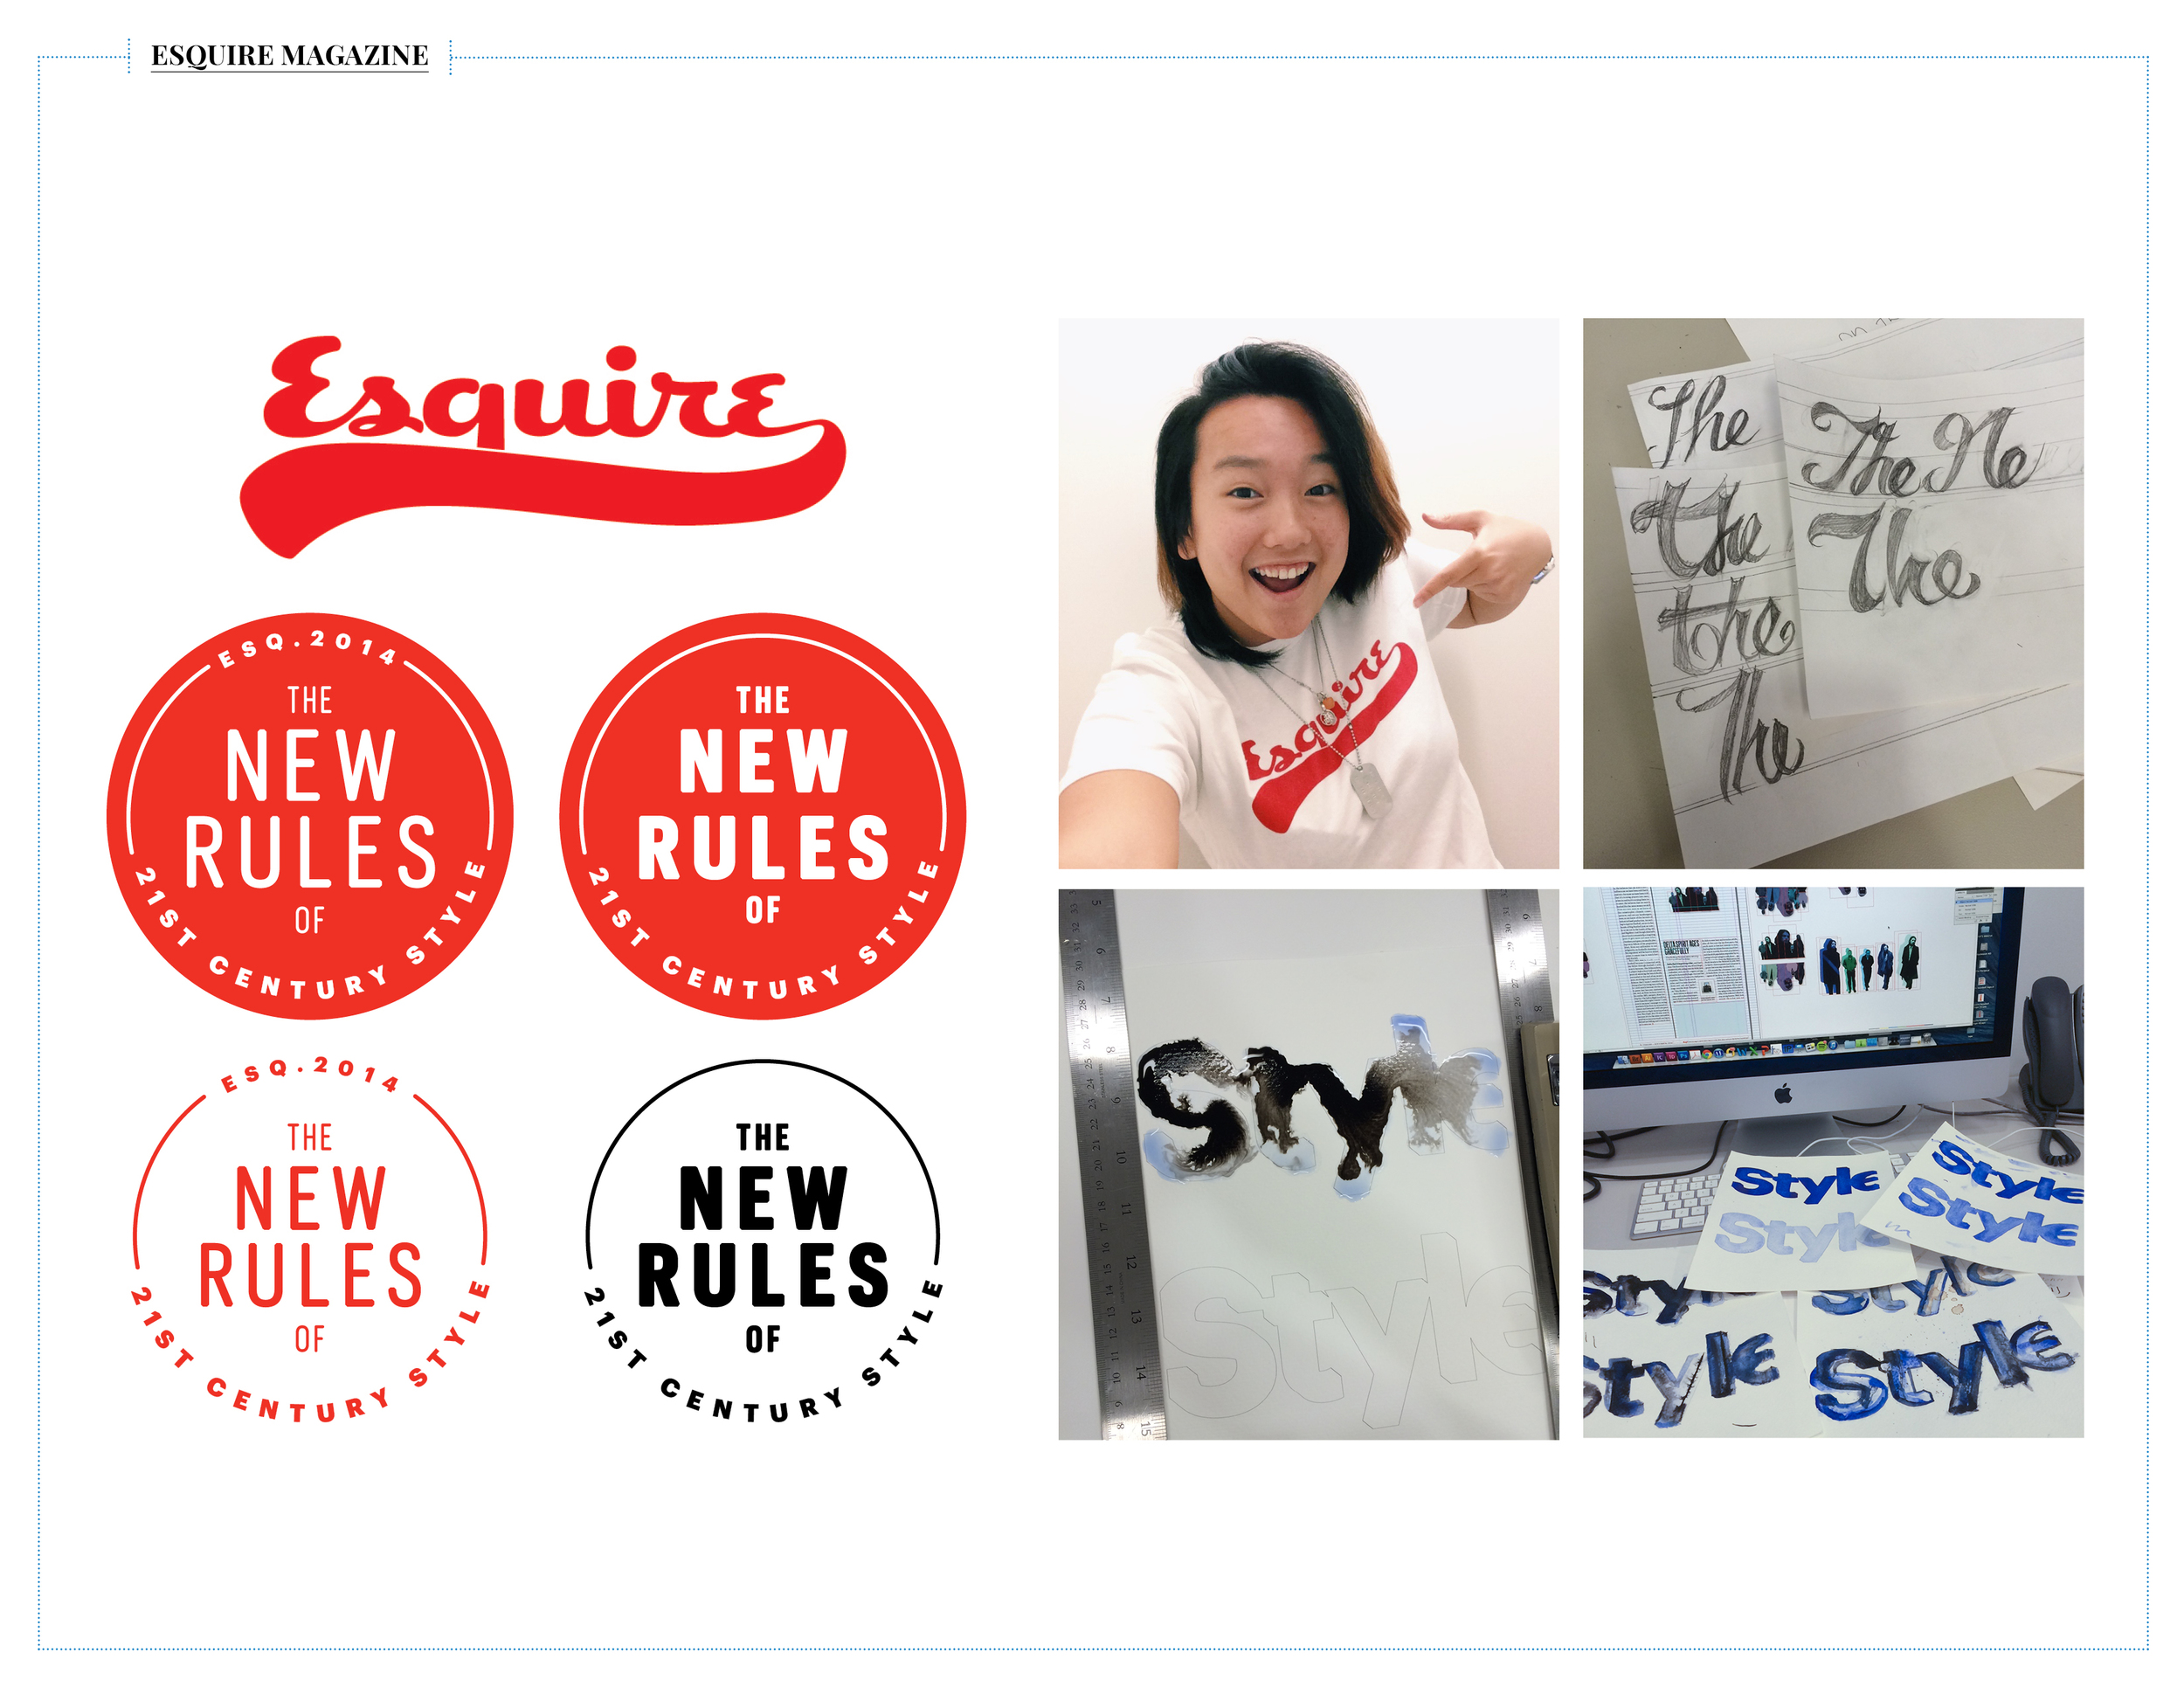 I was given a variety of assignments that ranged from designing their company baseball league t-shirt todesigning headers and seals for their monthly Style section.